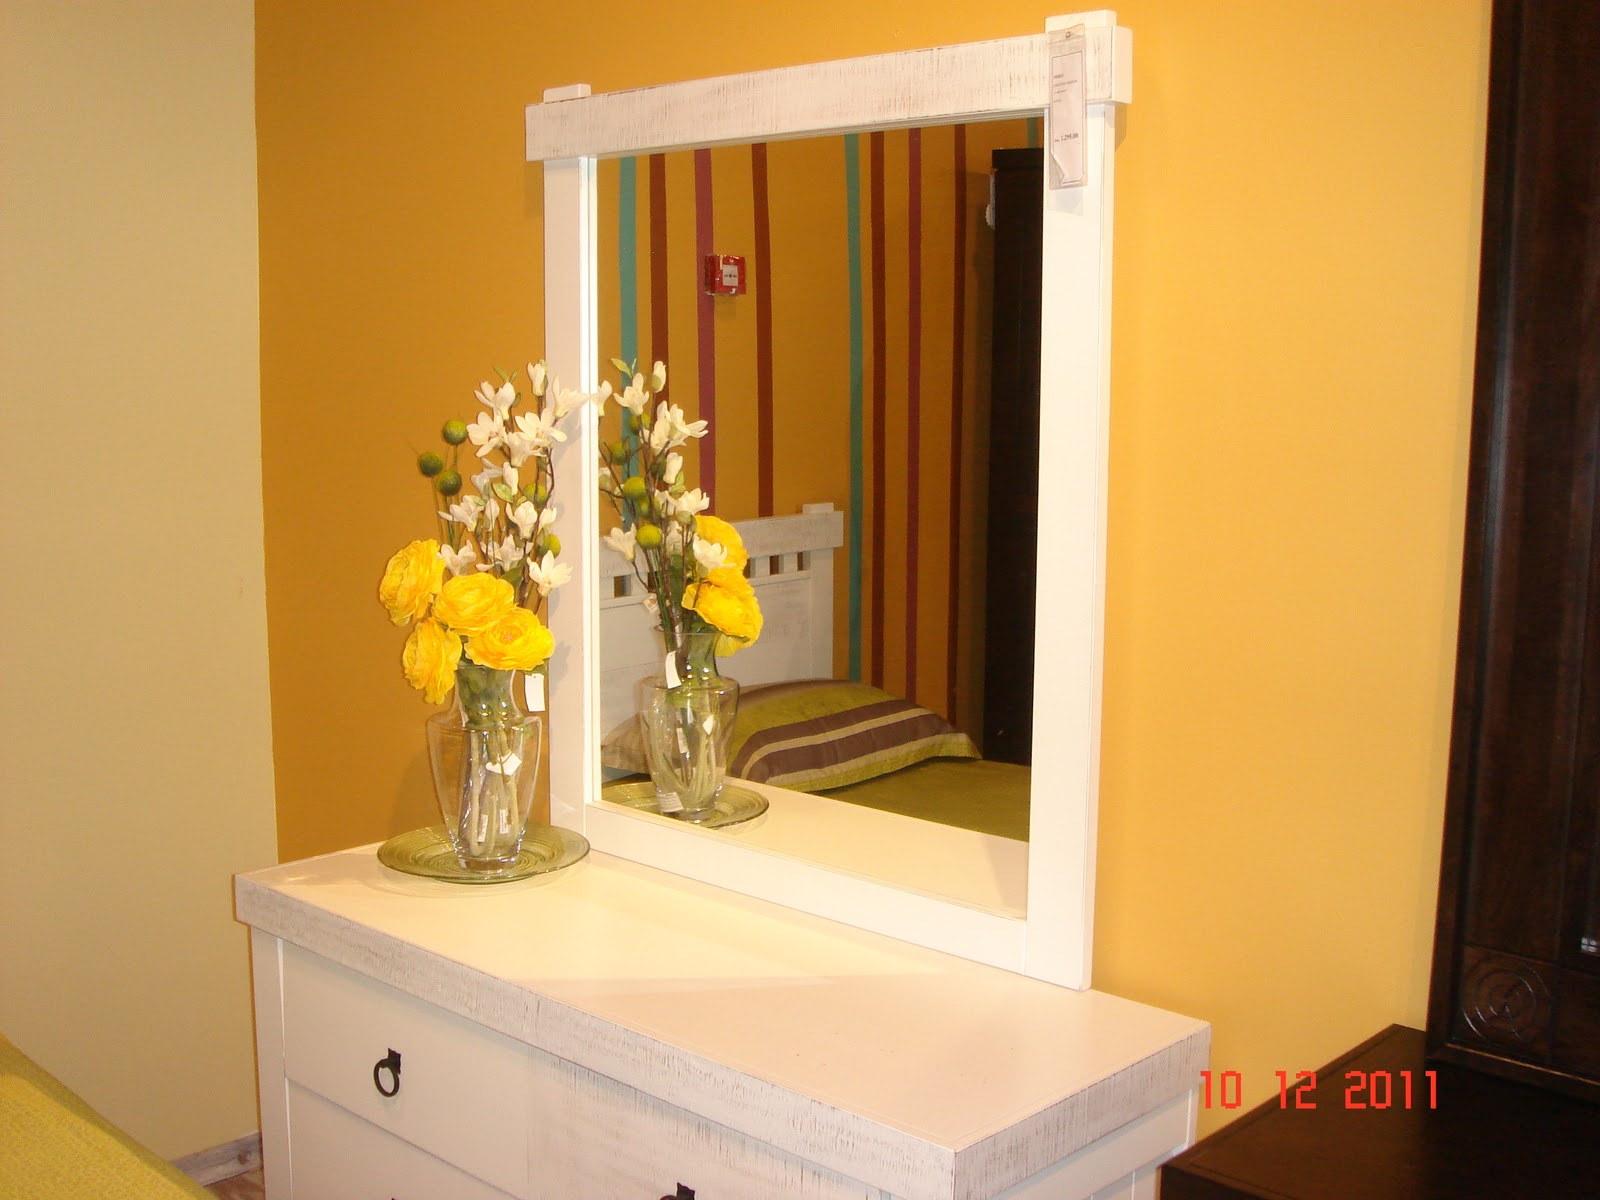 Dressing table designs - Dressing Table Designs 3